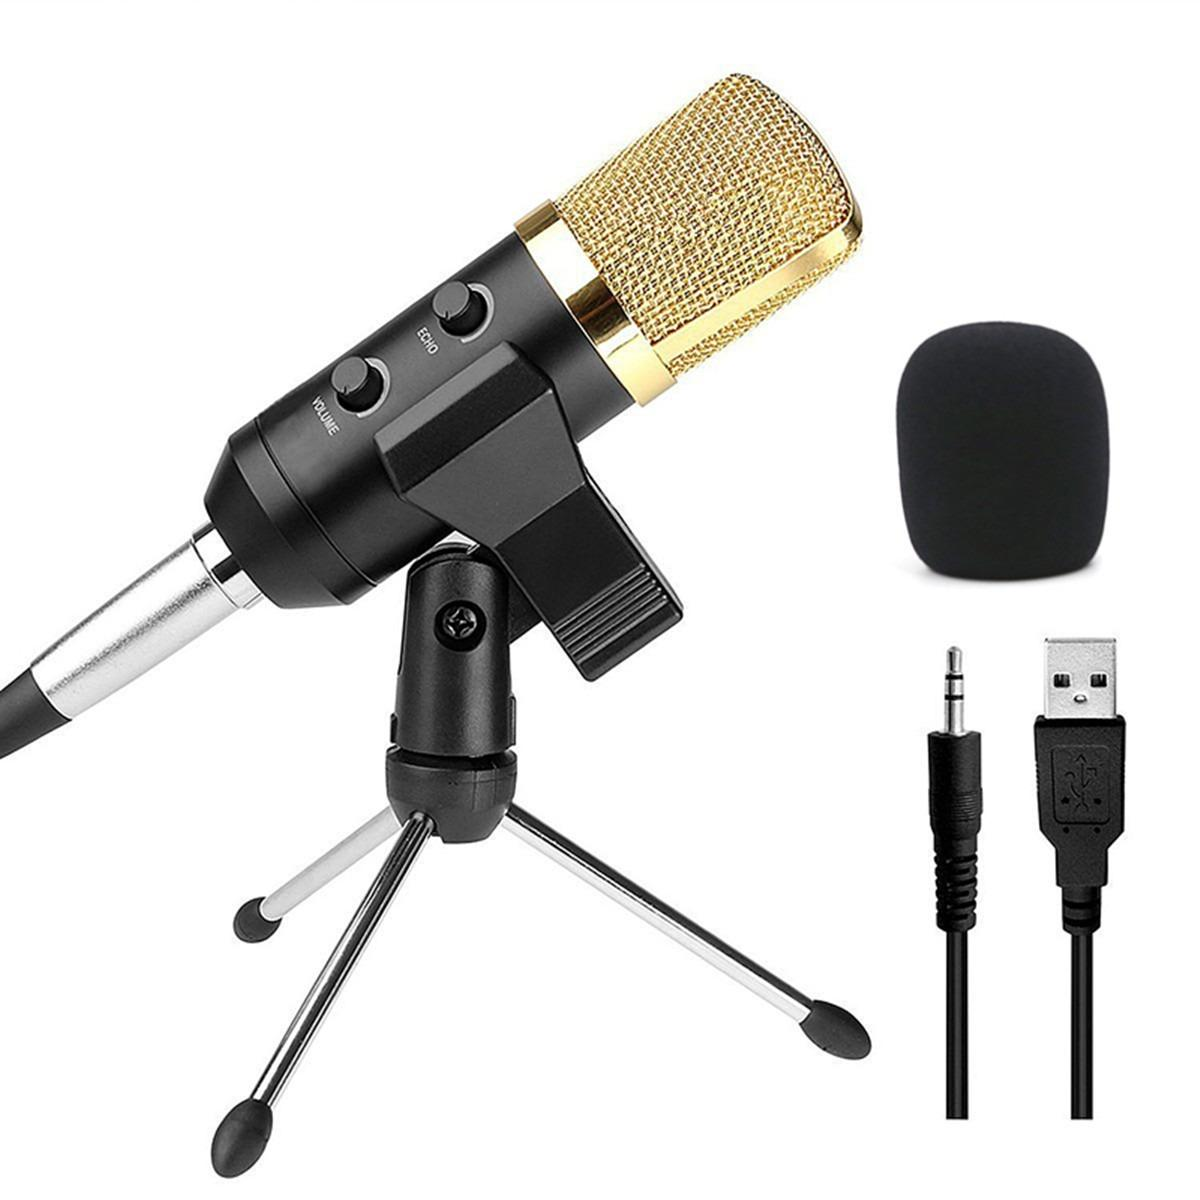 Diskon Audio Usb Kondensor Sound Studio Recording Vokal Mikrofon Dengan Stand Mount New Black Internasional Not Specified Di Indonesia